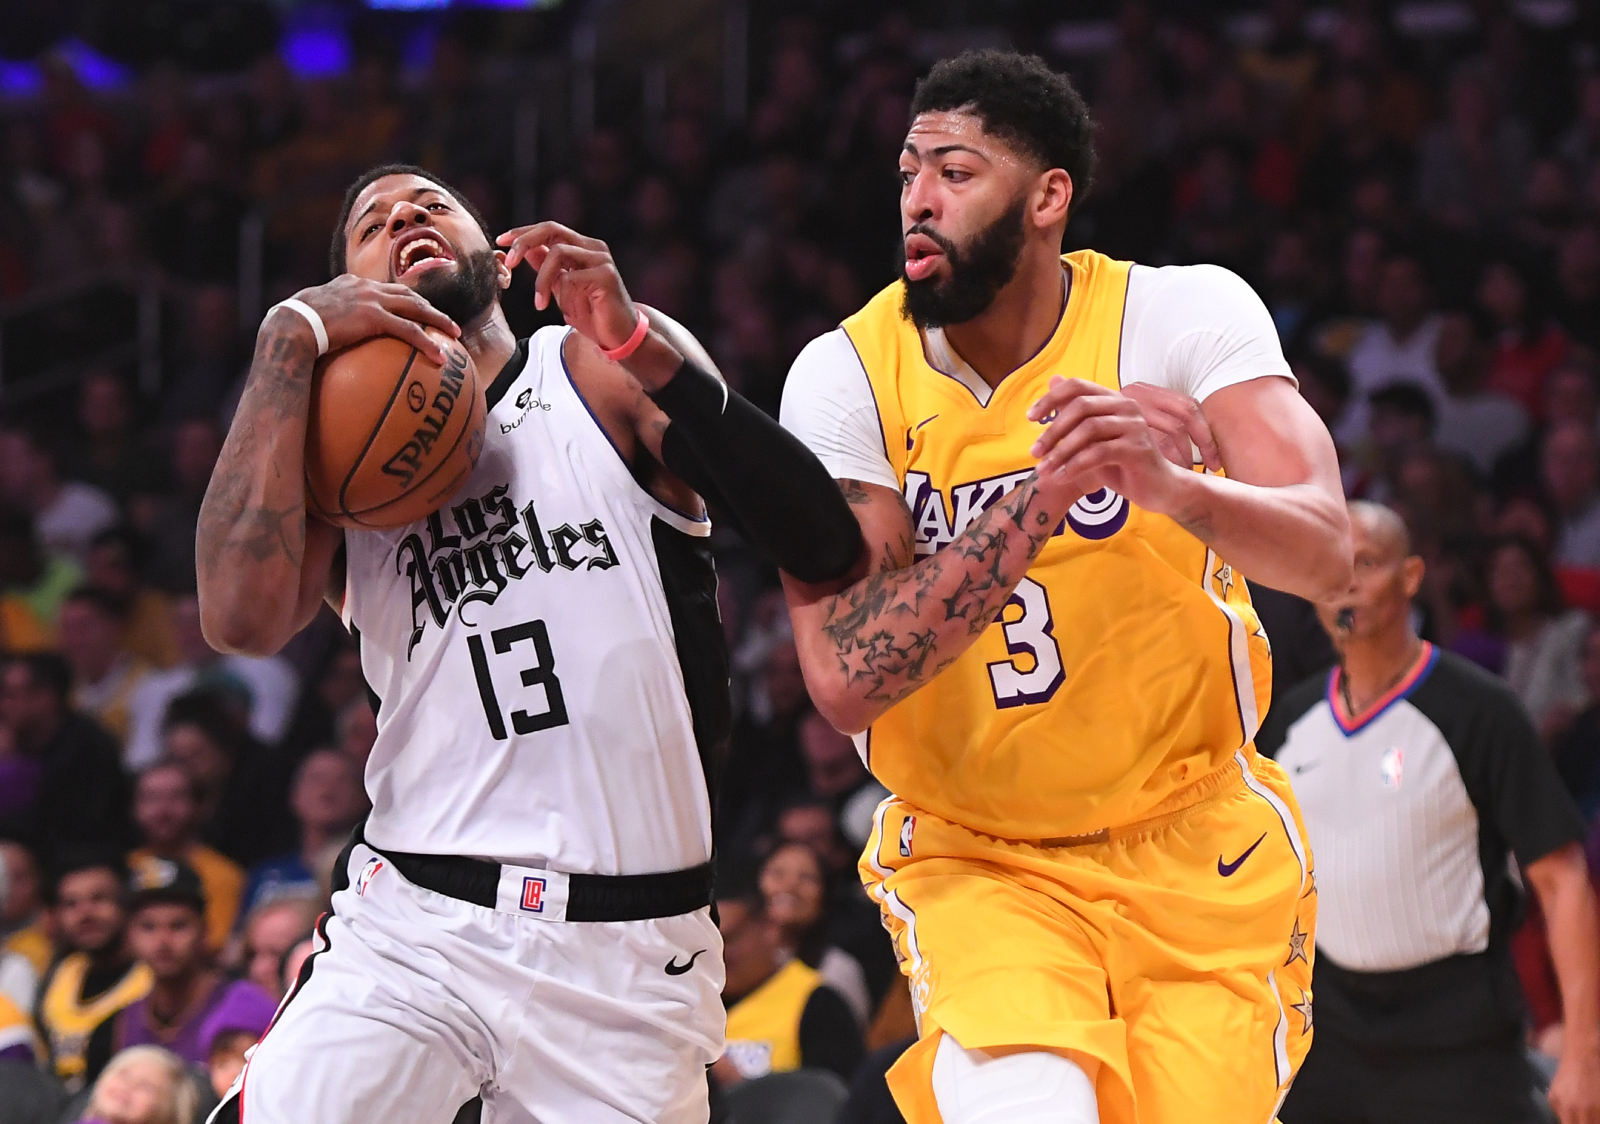 Anthony Davis and Paul George both have chances to win a championship this year for the Lakers and Clippers. Who has a higher net worth?